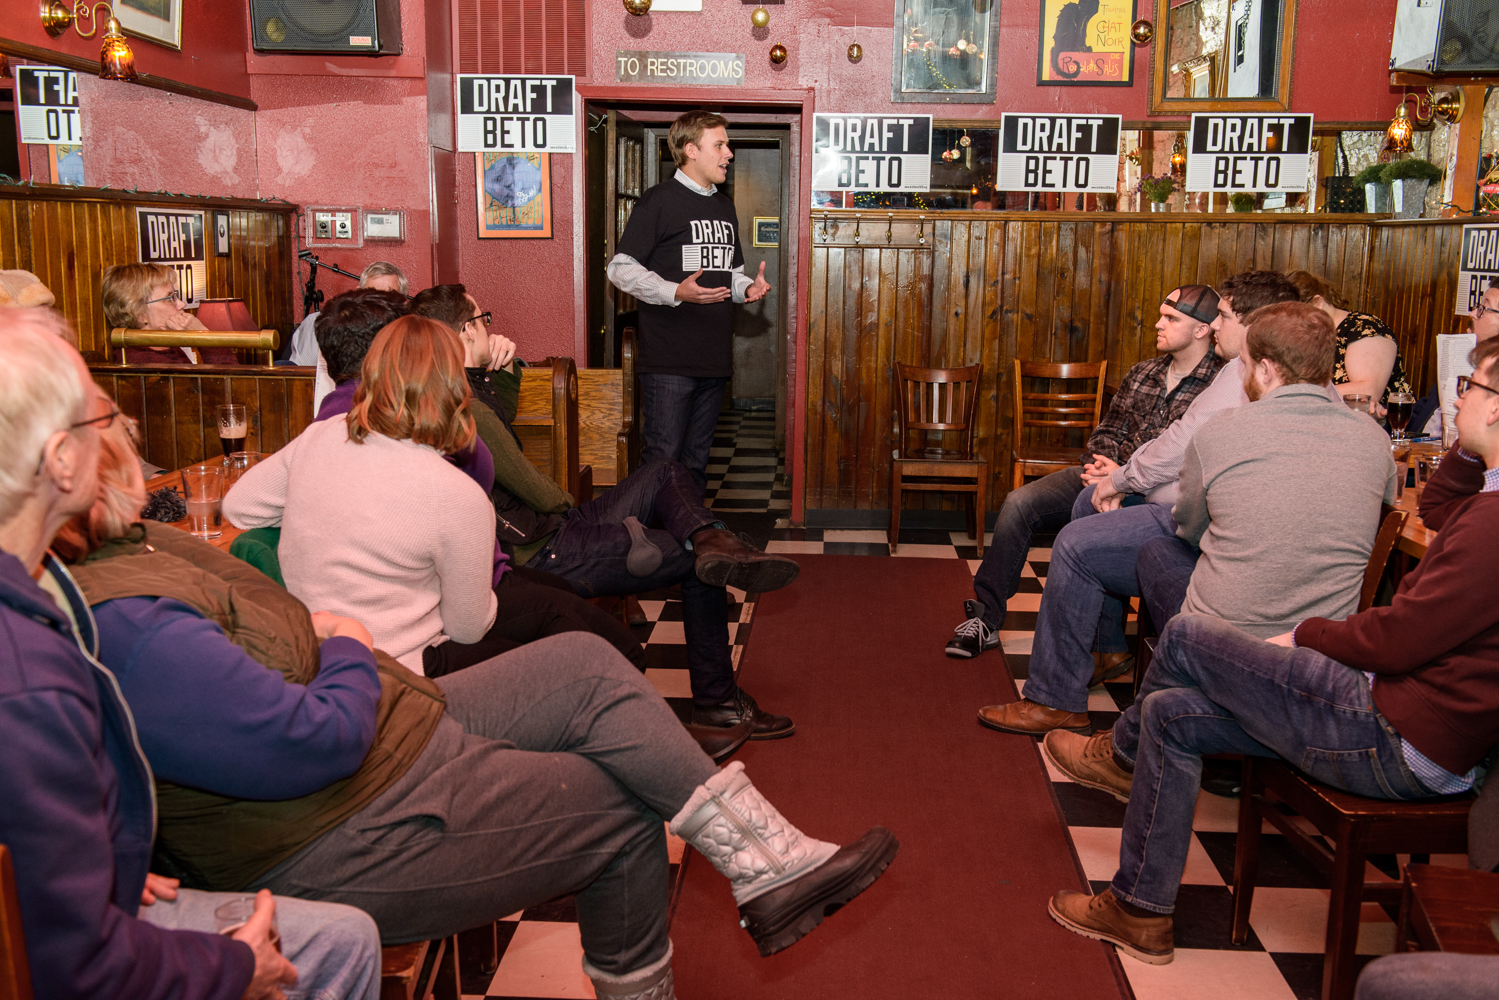 Draft Beto organizer Will Heberberich speaks during a meeting of the group at the Sanctuary Pub in Iowa City on Wednesday, January 16, 2019. Draft Beto is a group seeking to build grassroots support for former Rep. Beto O'Rourke, D-Texas. O'Rourke has not announced a campaign for president in 2020.